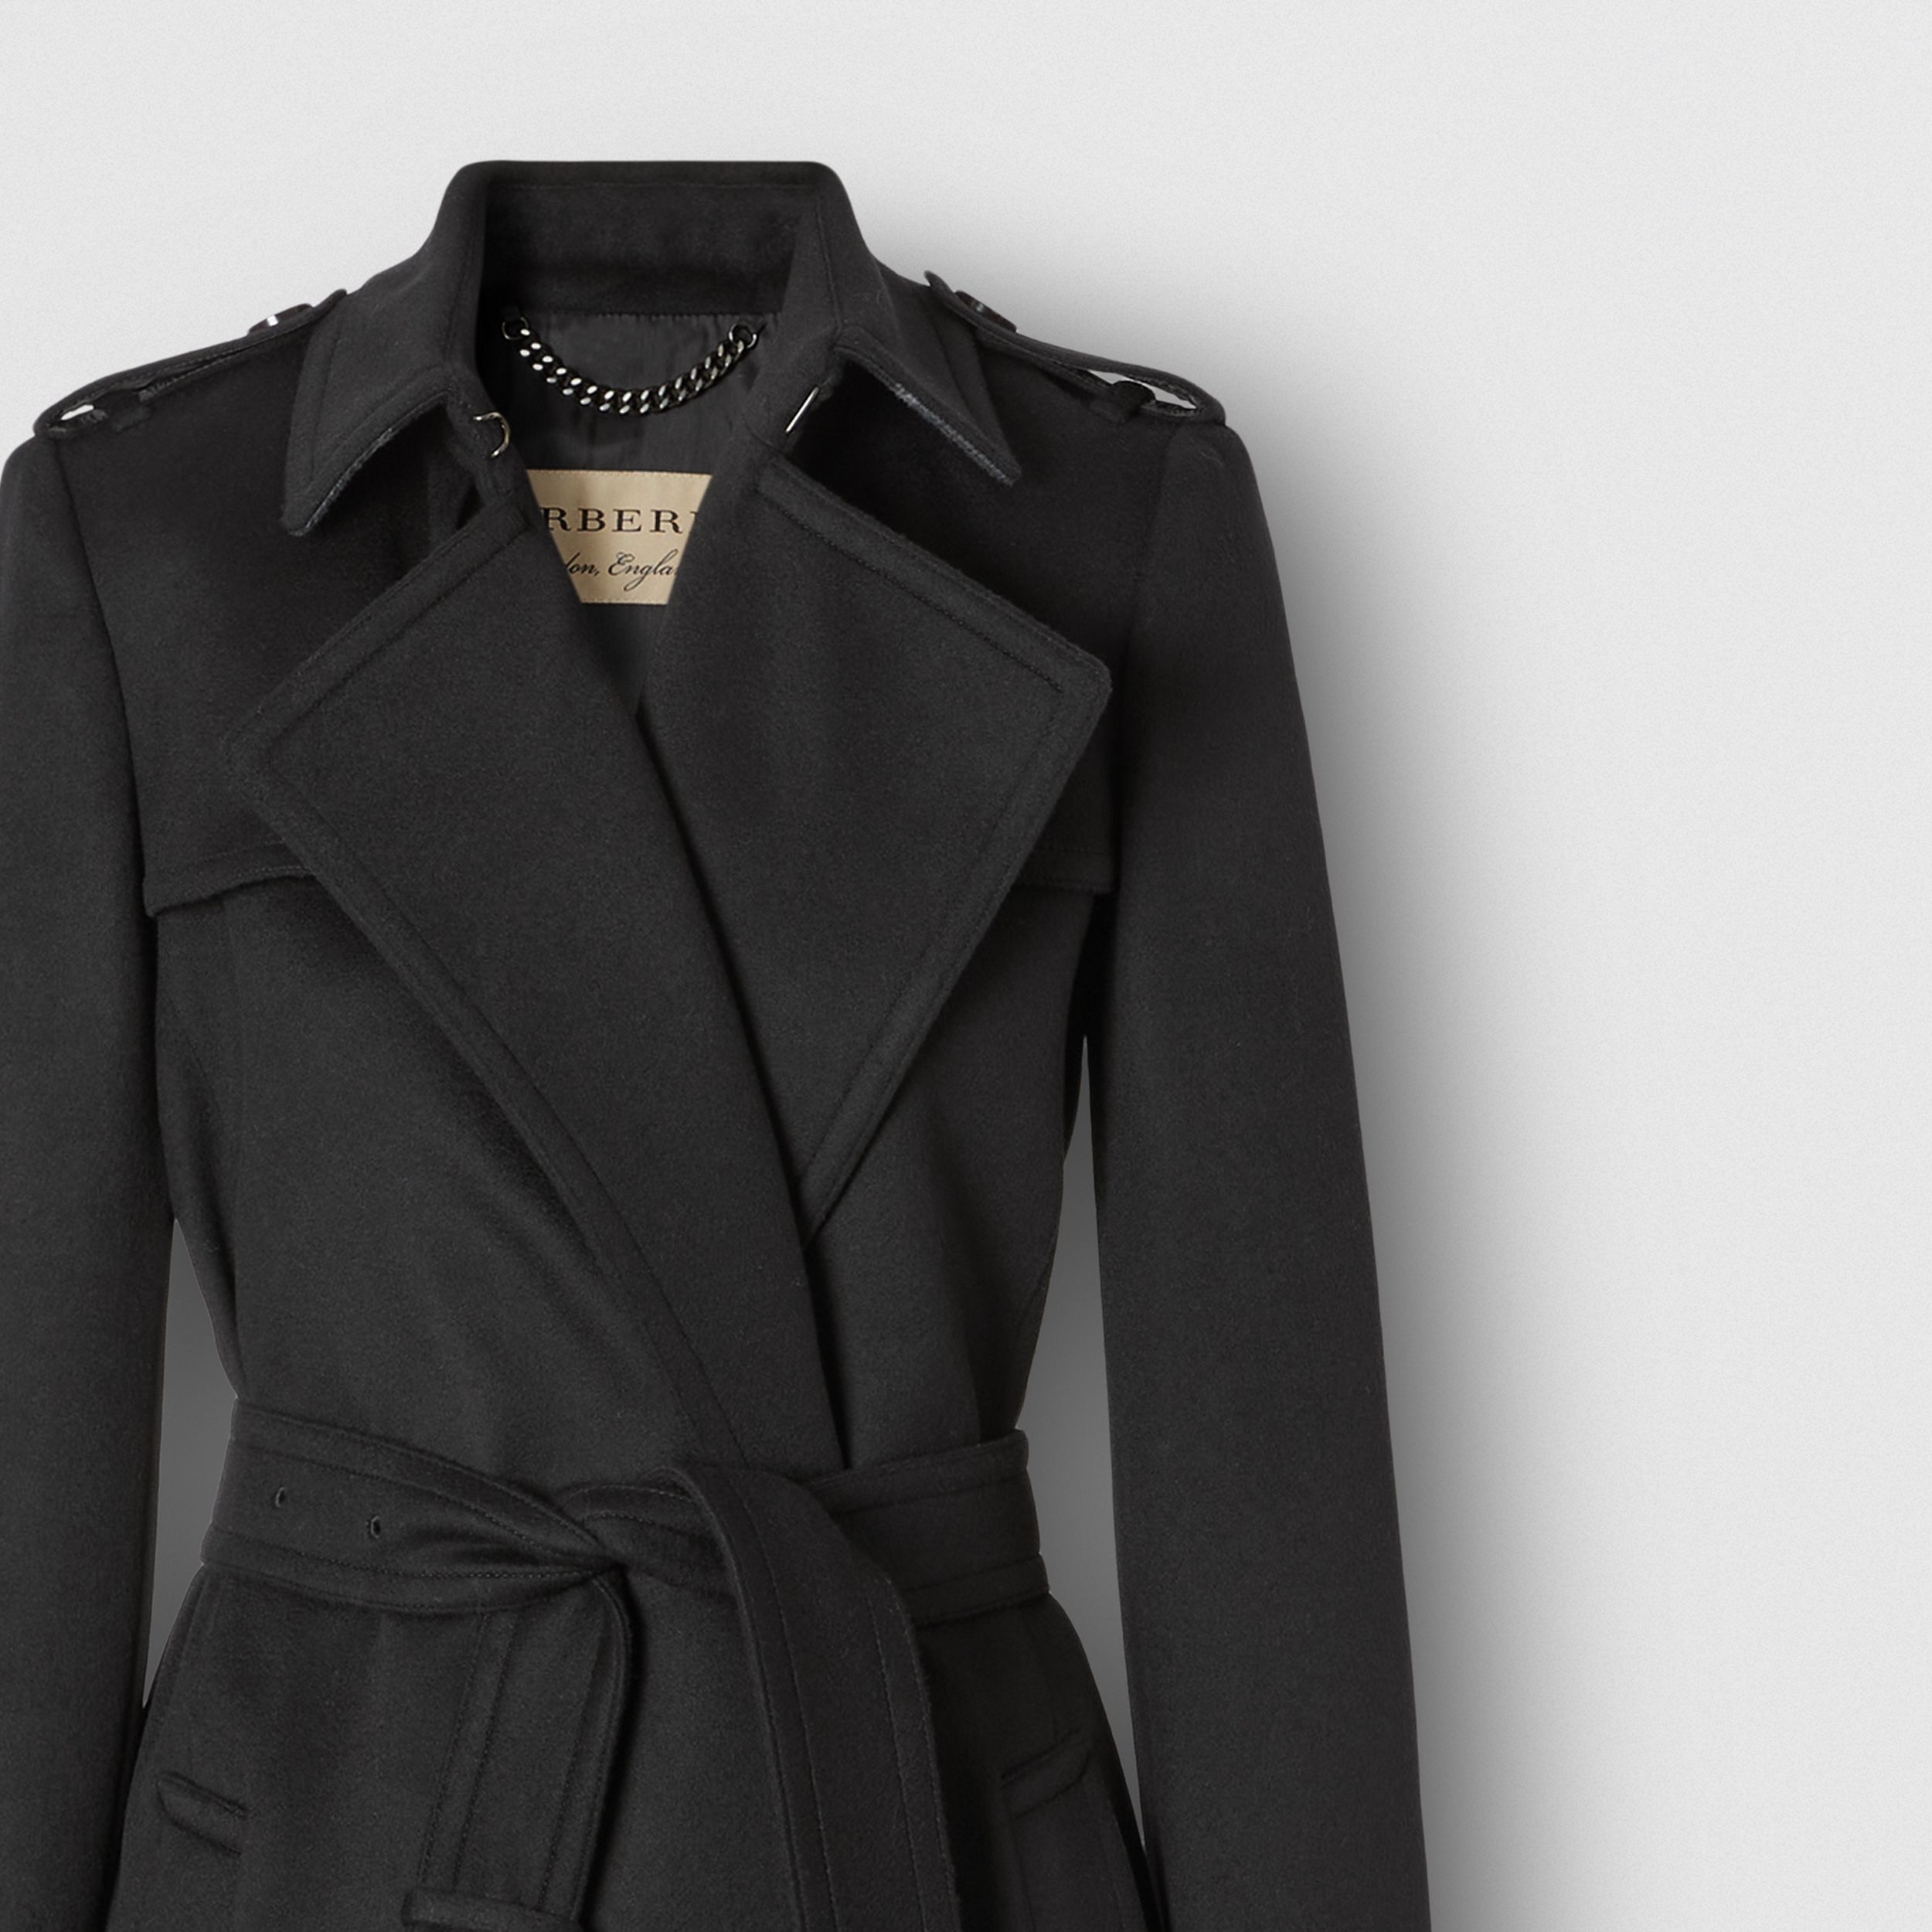 Wool Cashmere Trench Coat in Black - Women | Burberry - 2